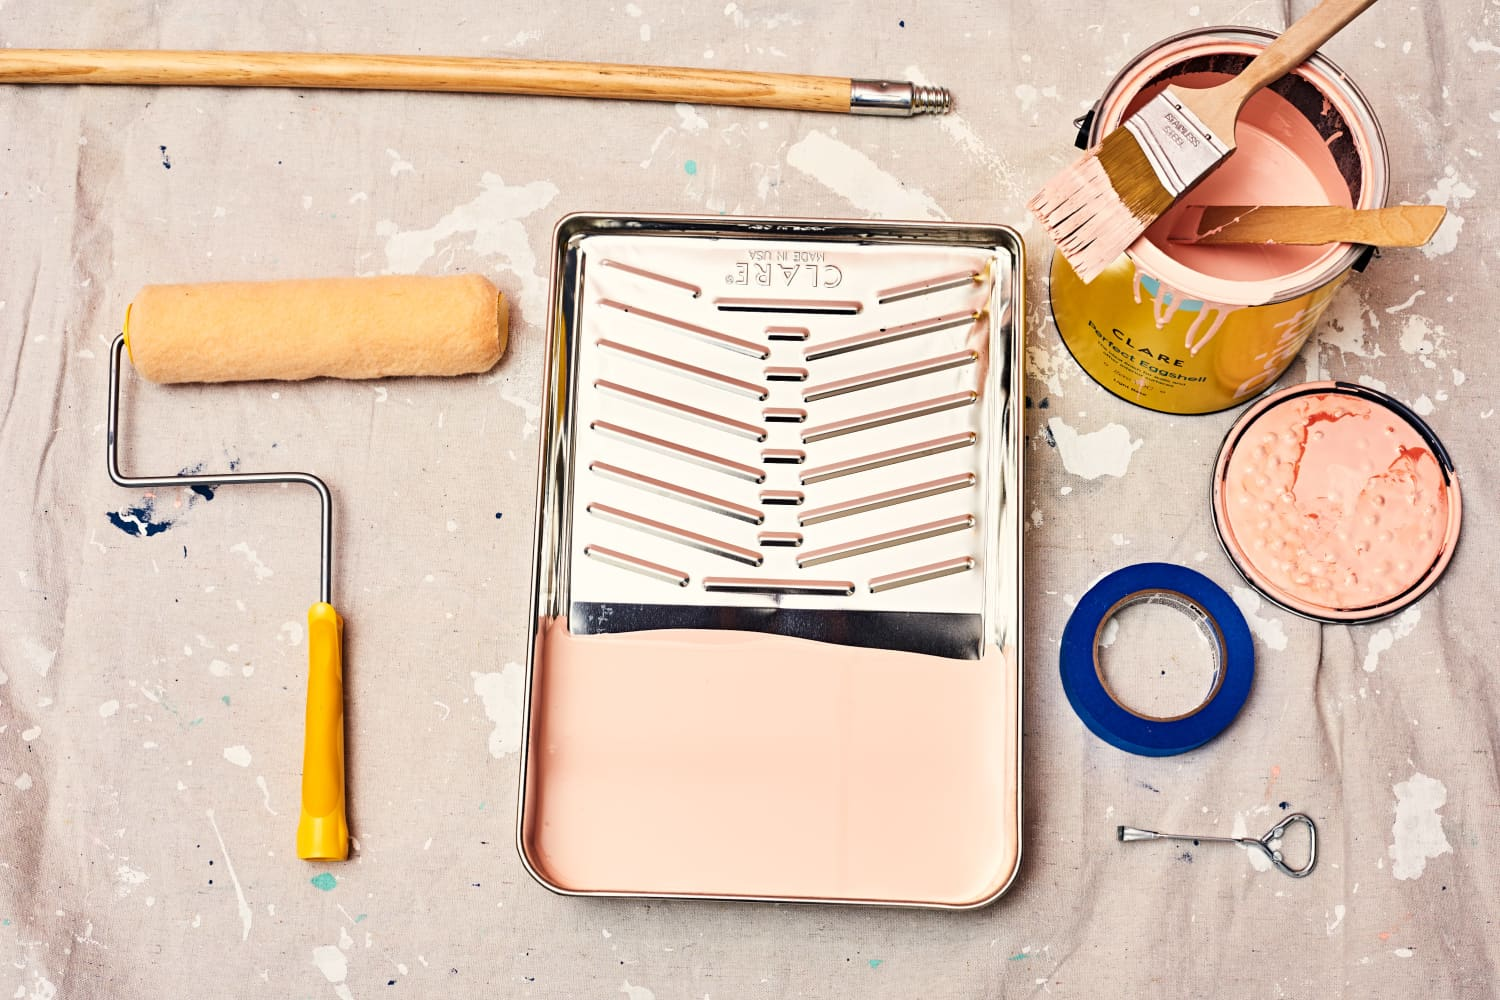 4 Paint Lessons I Learned from Volunteering with Habitat for Humanity